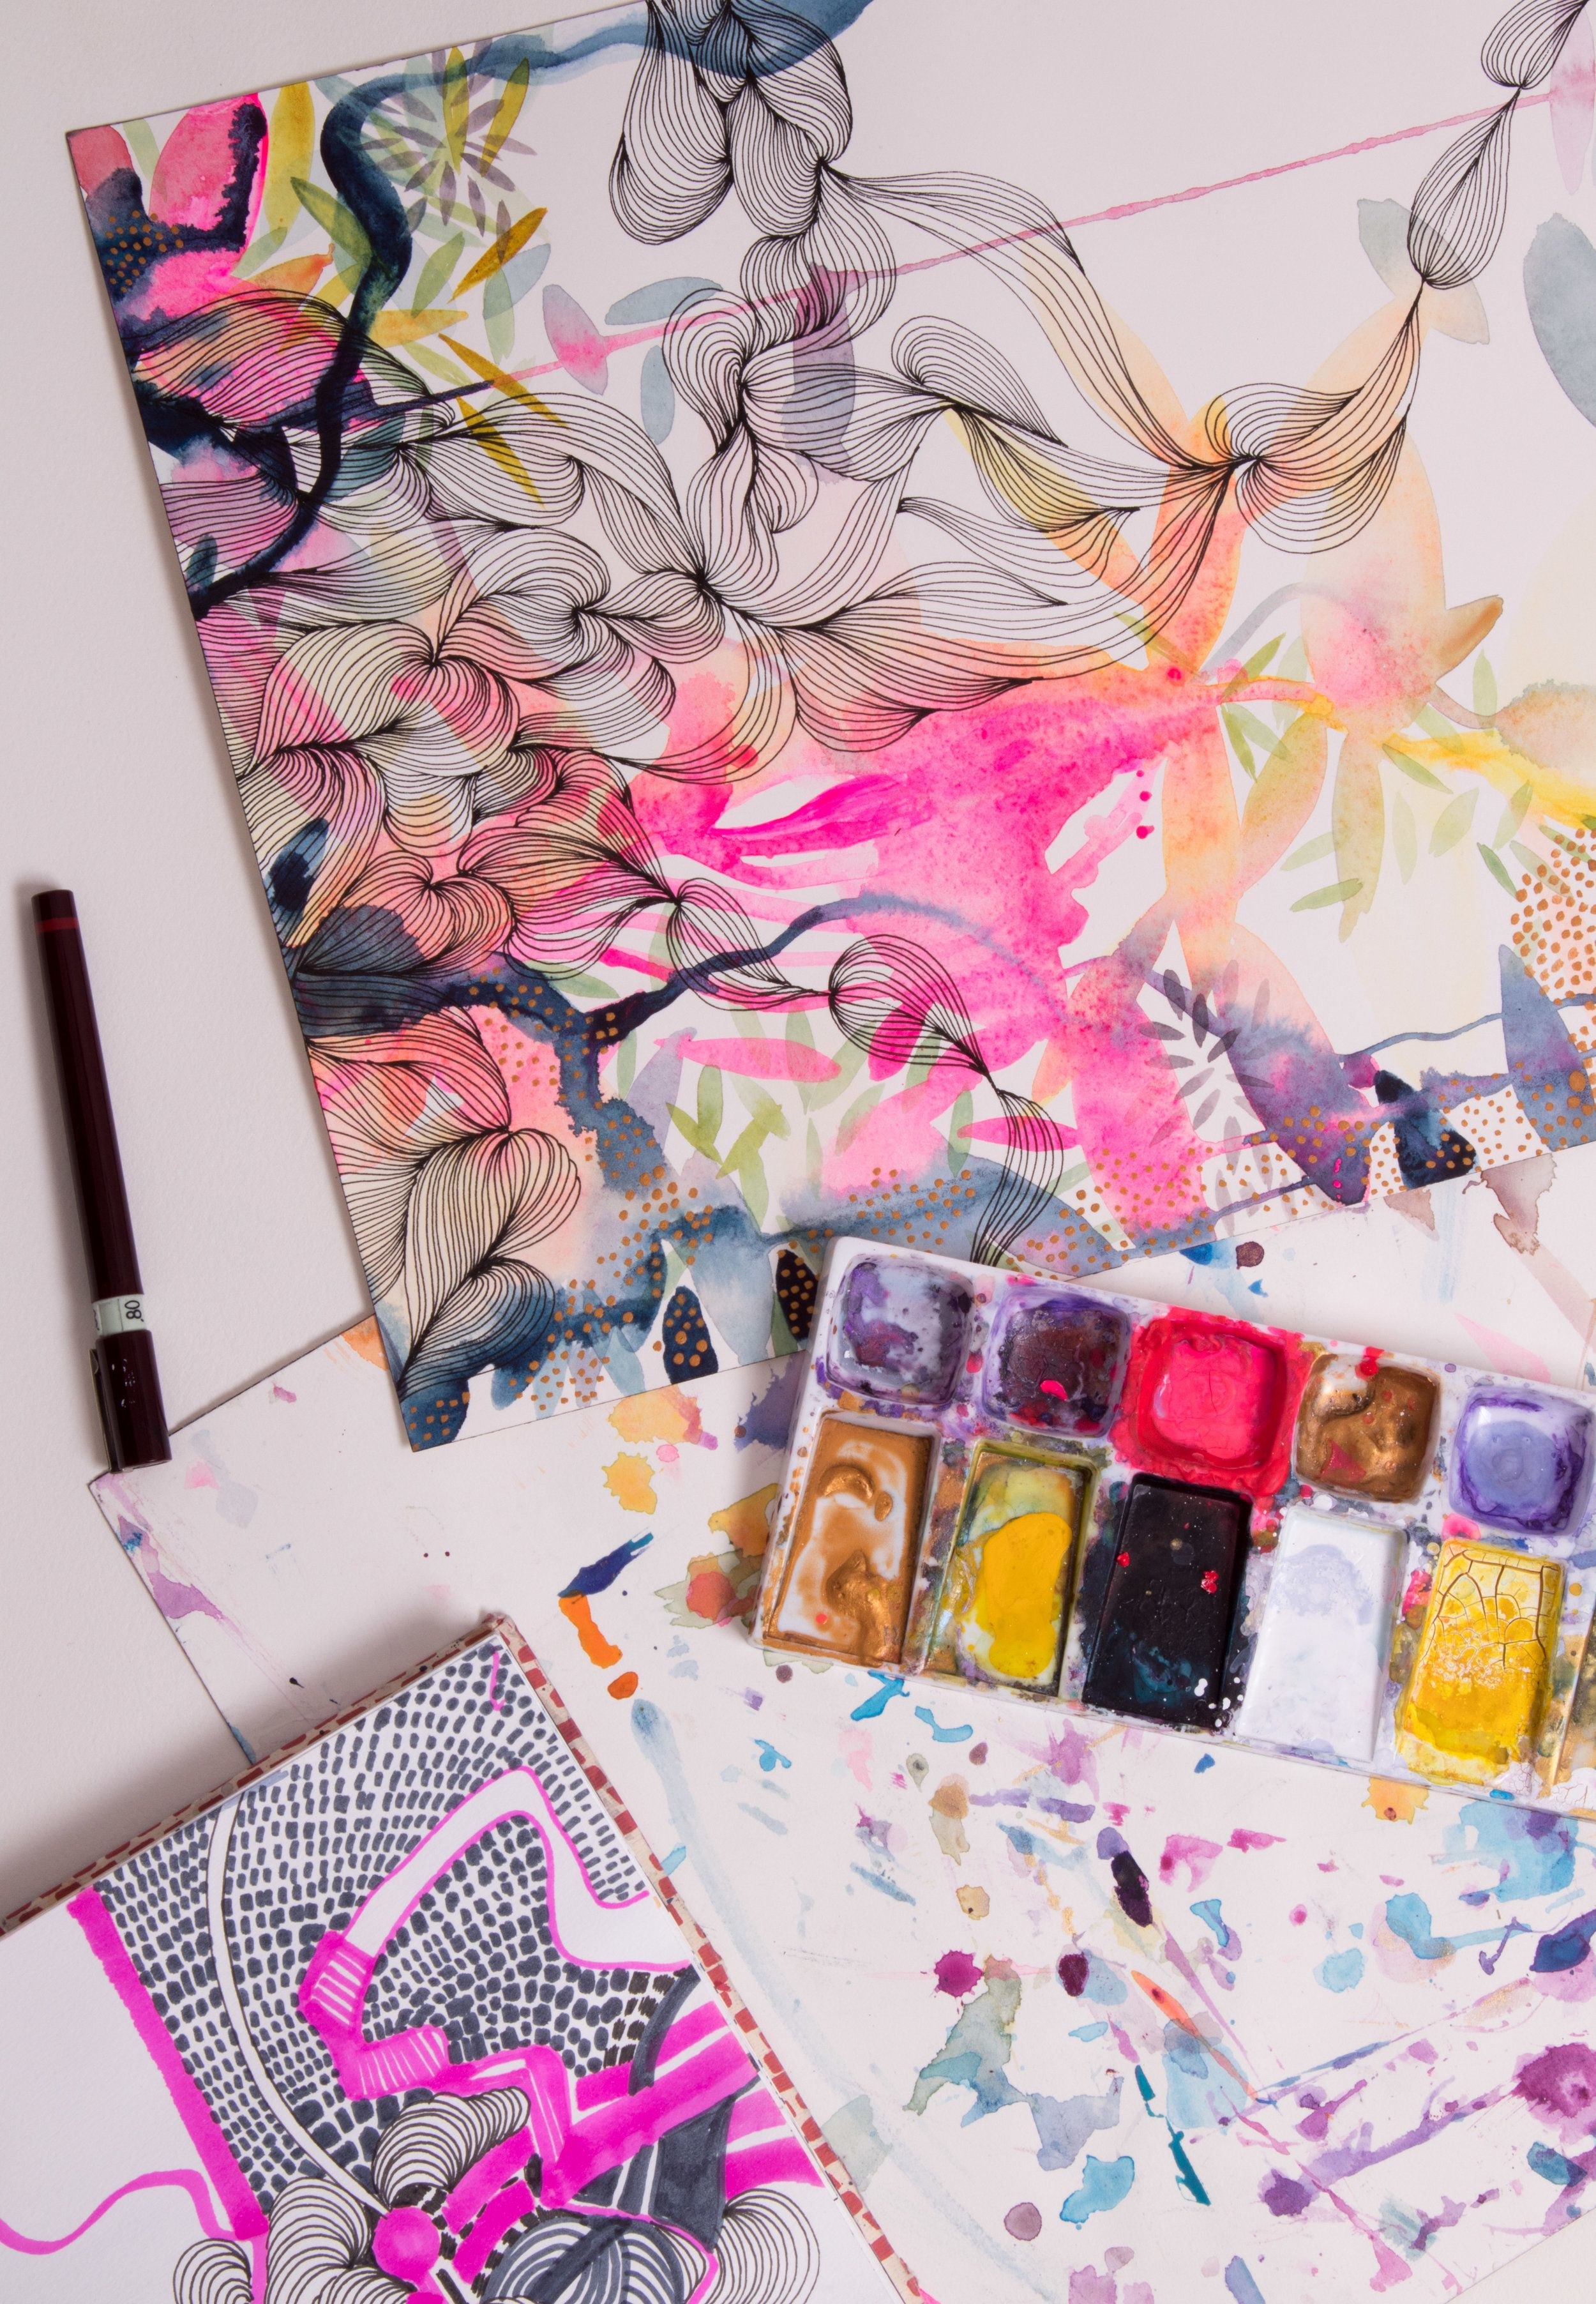 Pin By Lady Heather On Art Education Watercolor Art Painting